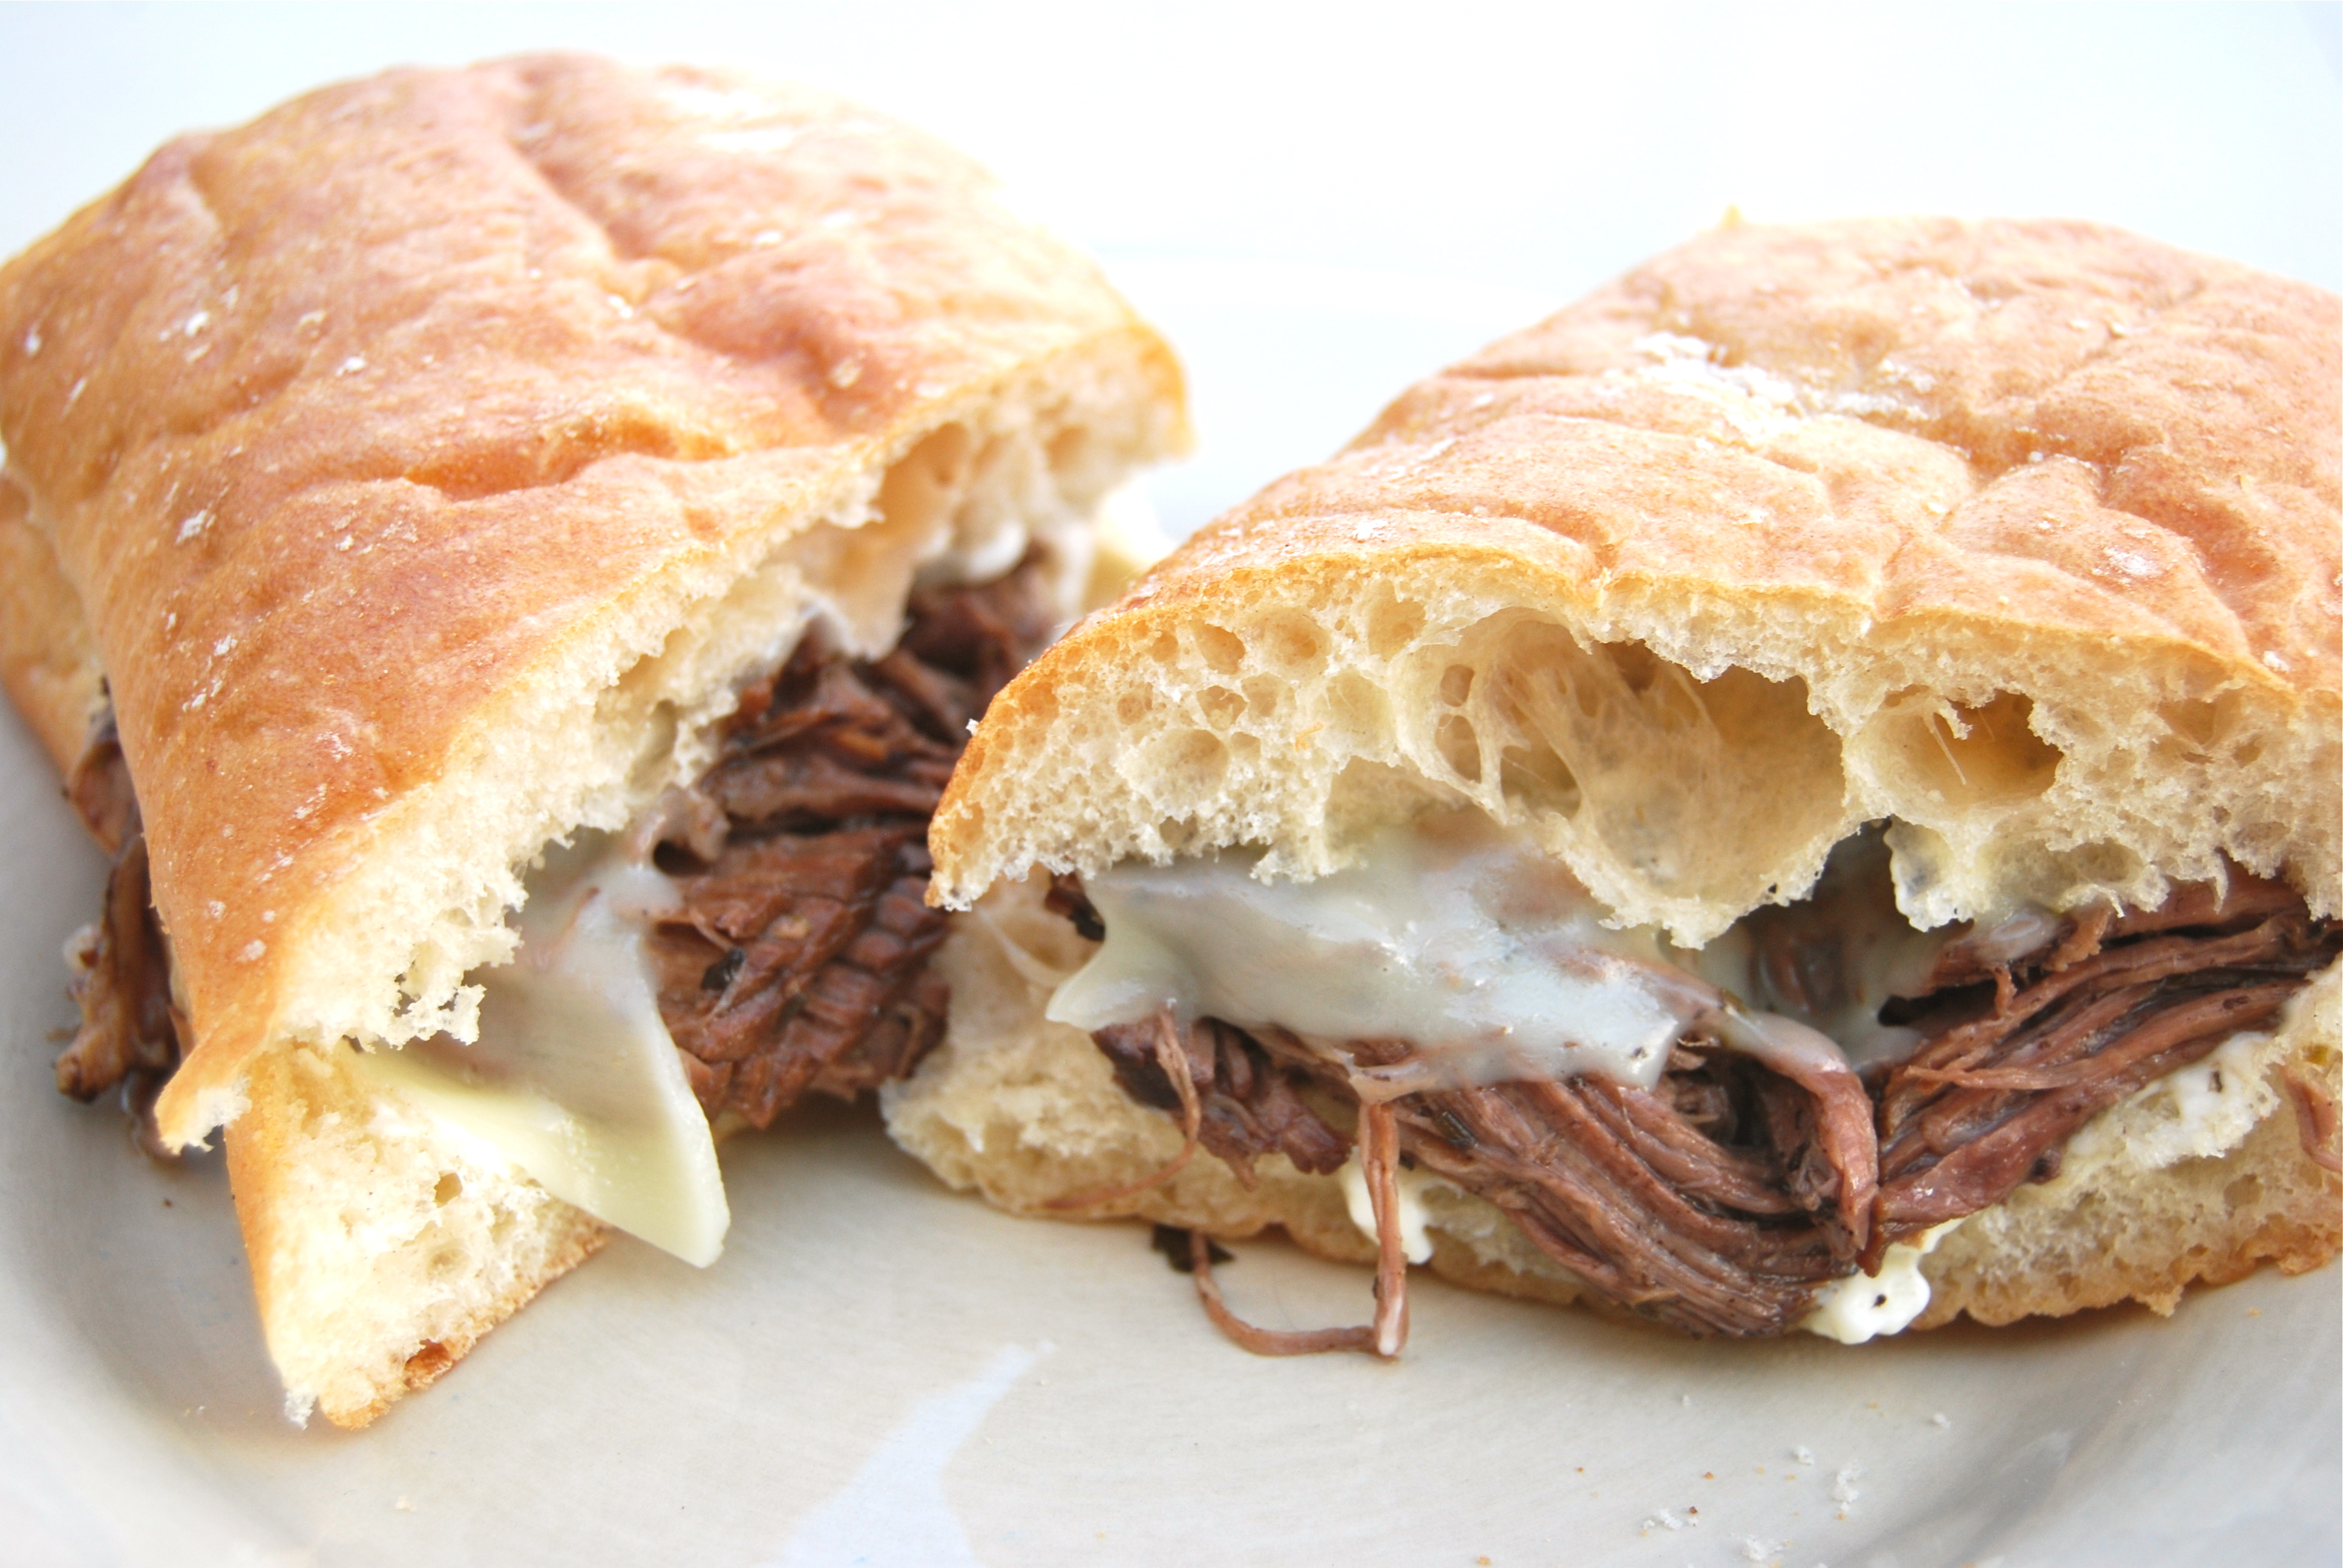 French Dip Sandwiches - Macaroni and Cheesecake